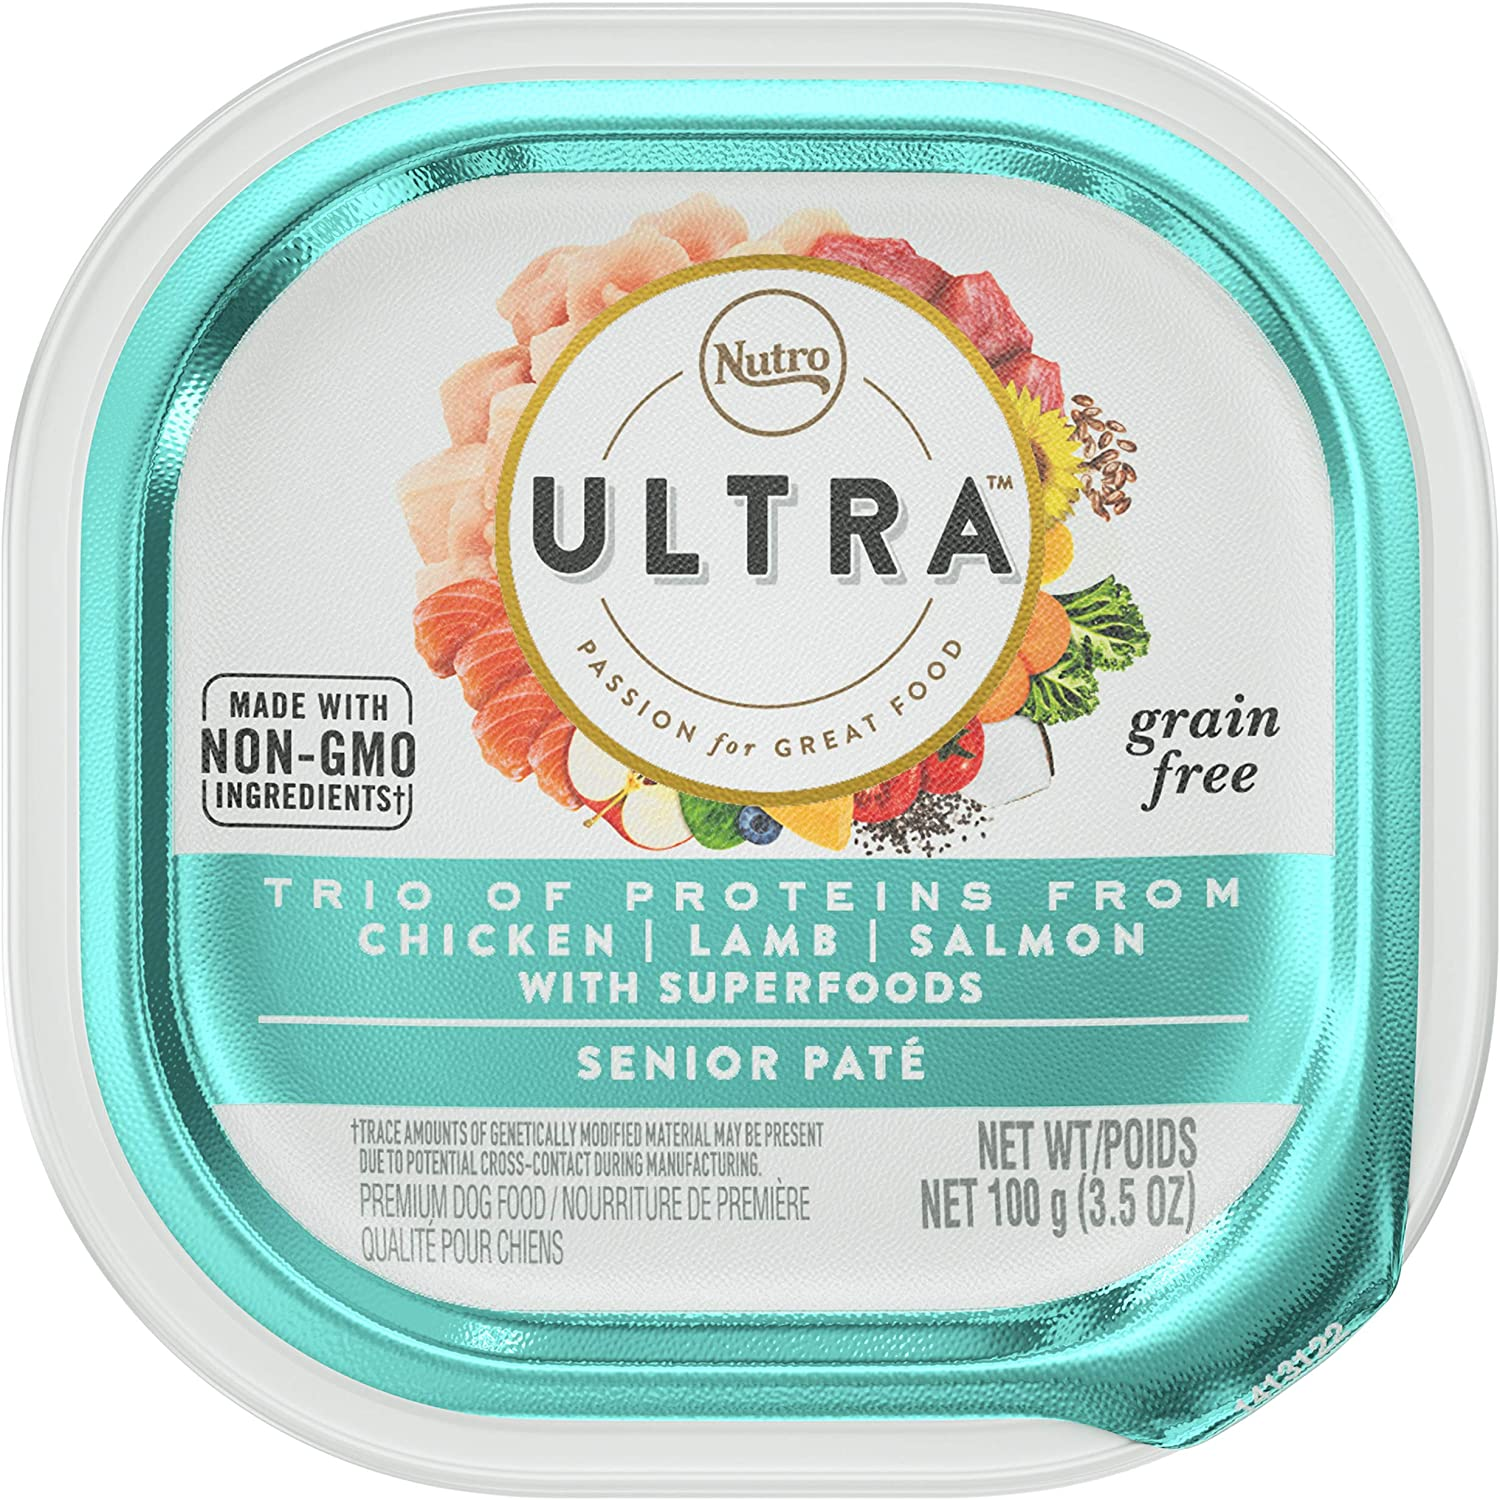 Nutro Ultra Grain Free Paté Adult & Senior Wet Dog Food